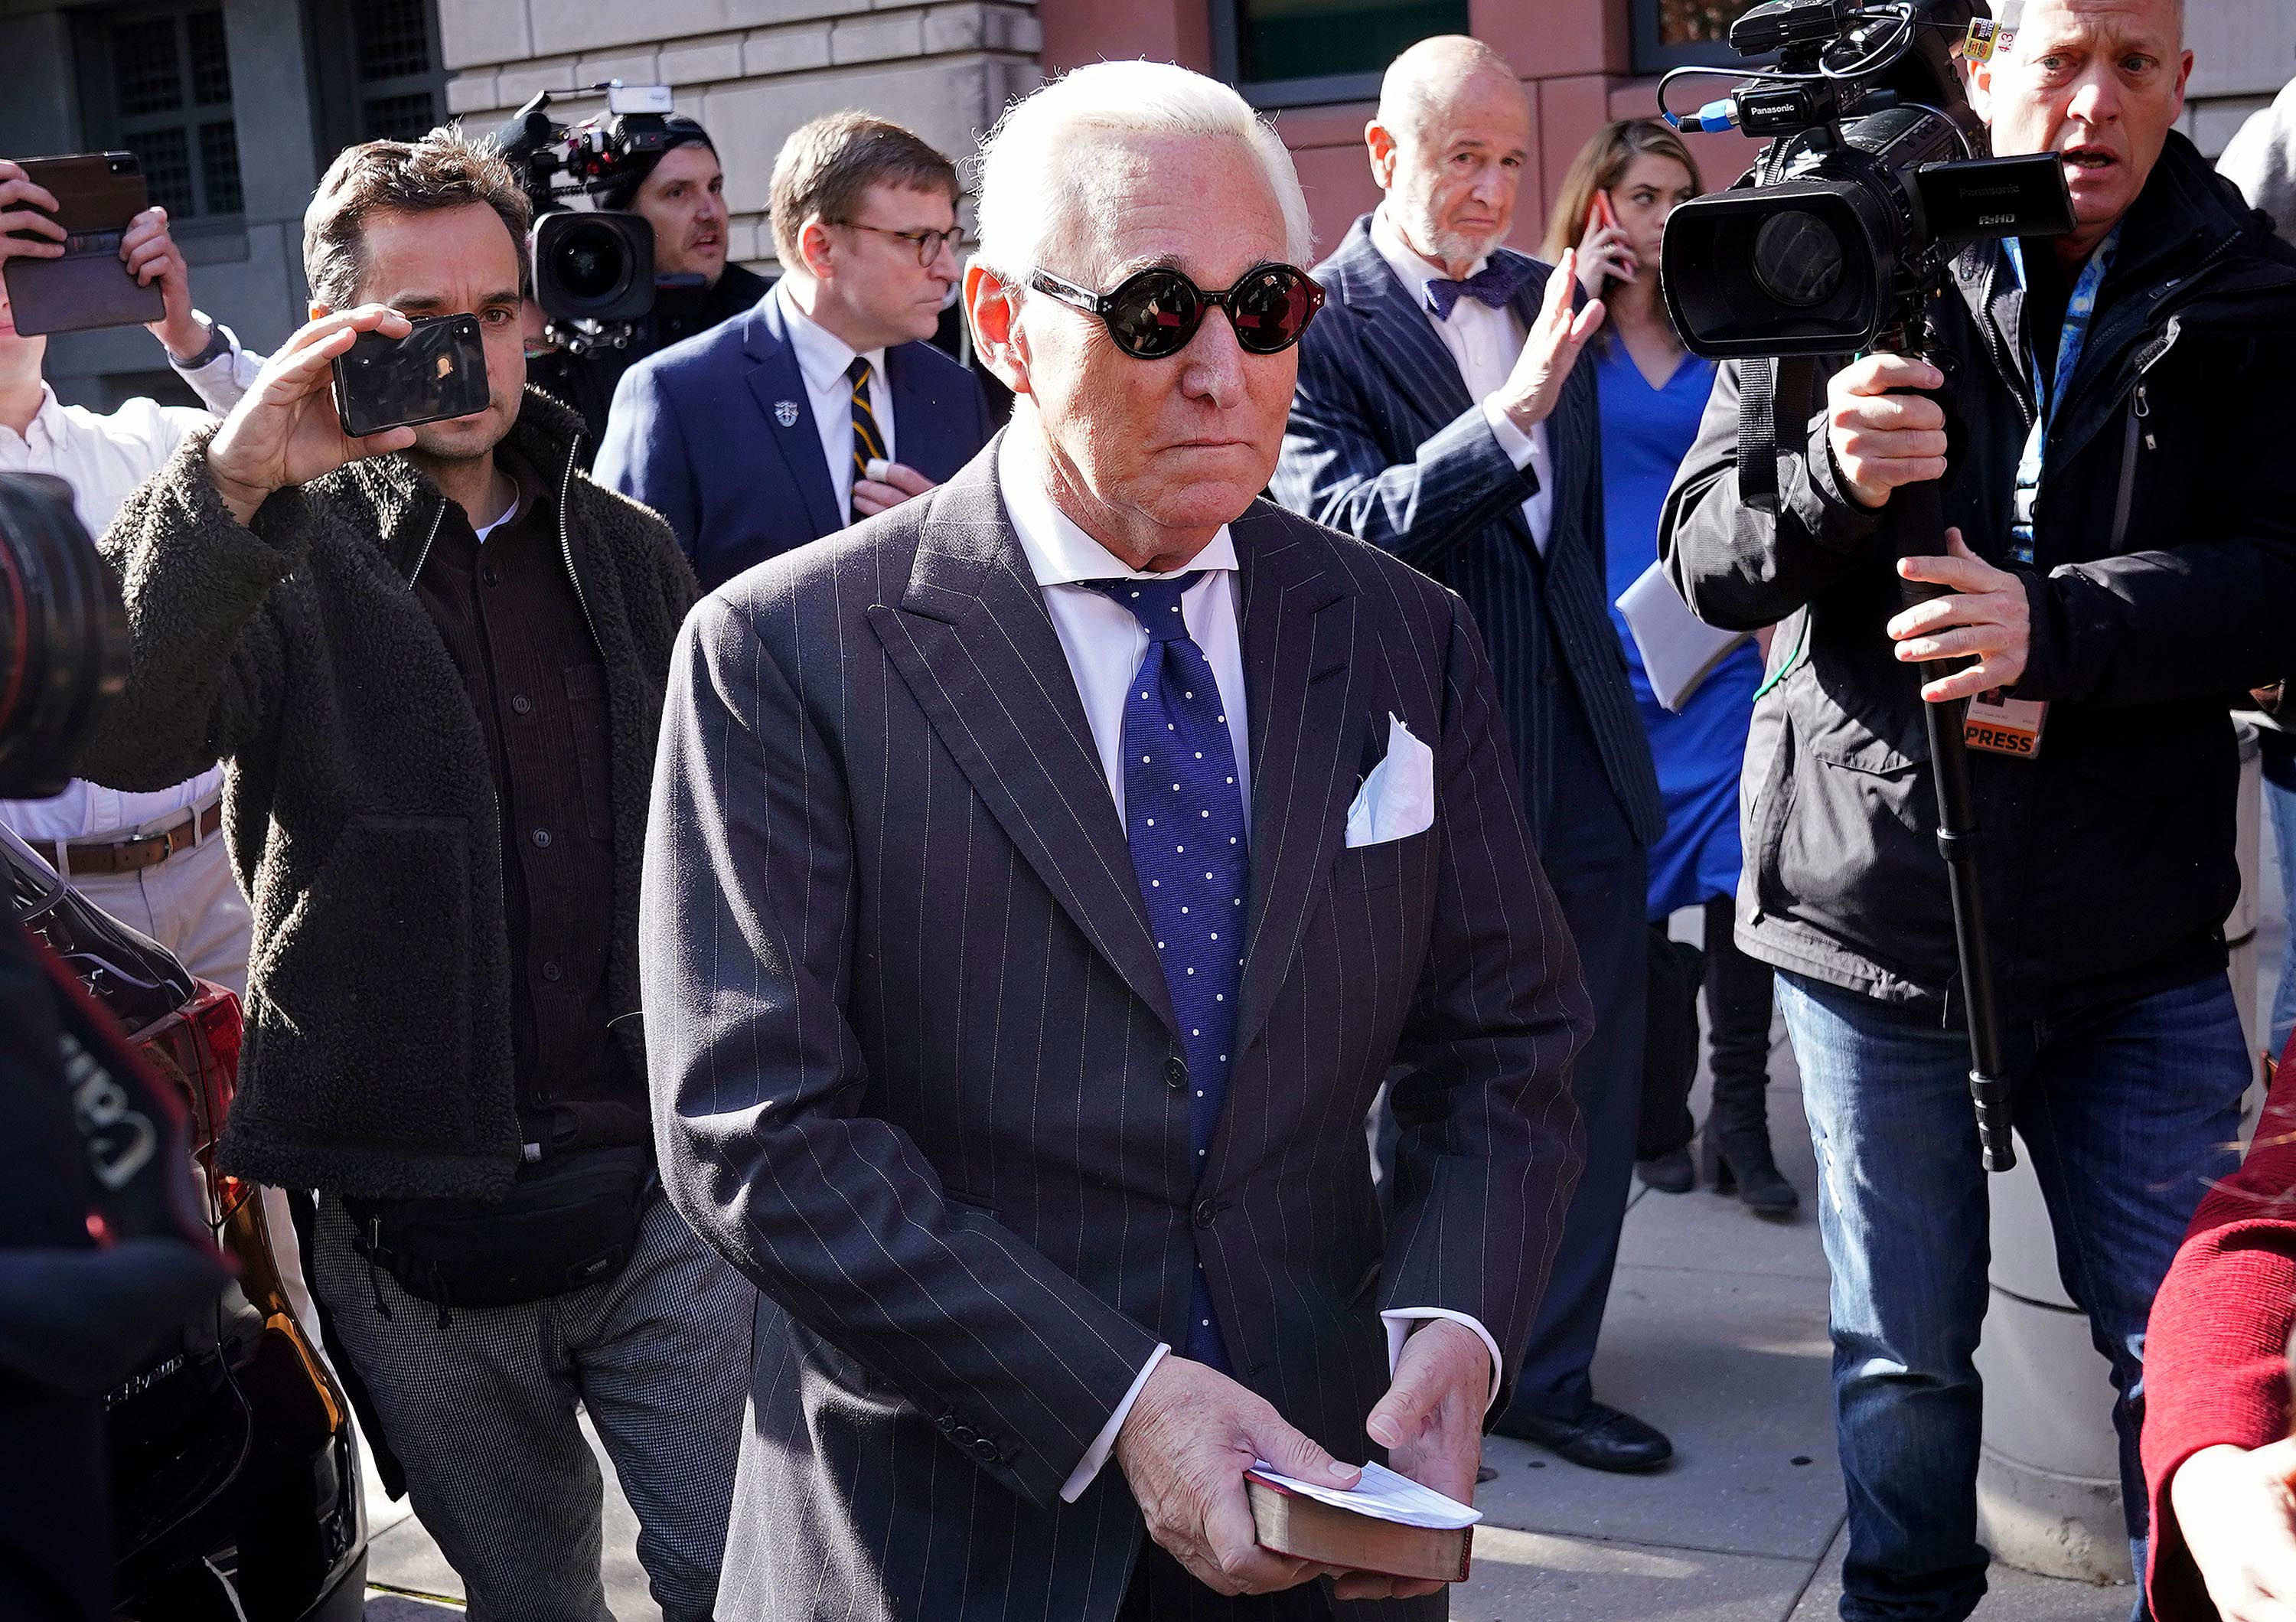 Roger Stone judge to discuss case in court amid sentencing chaos